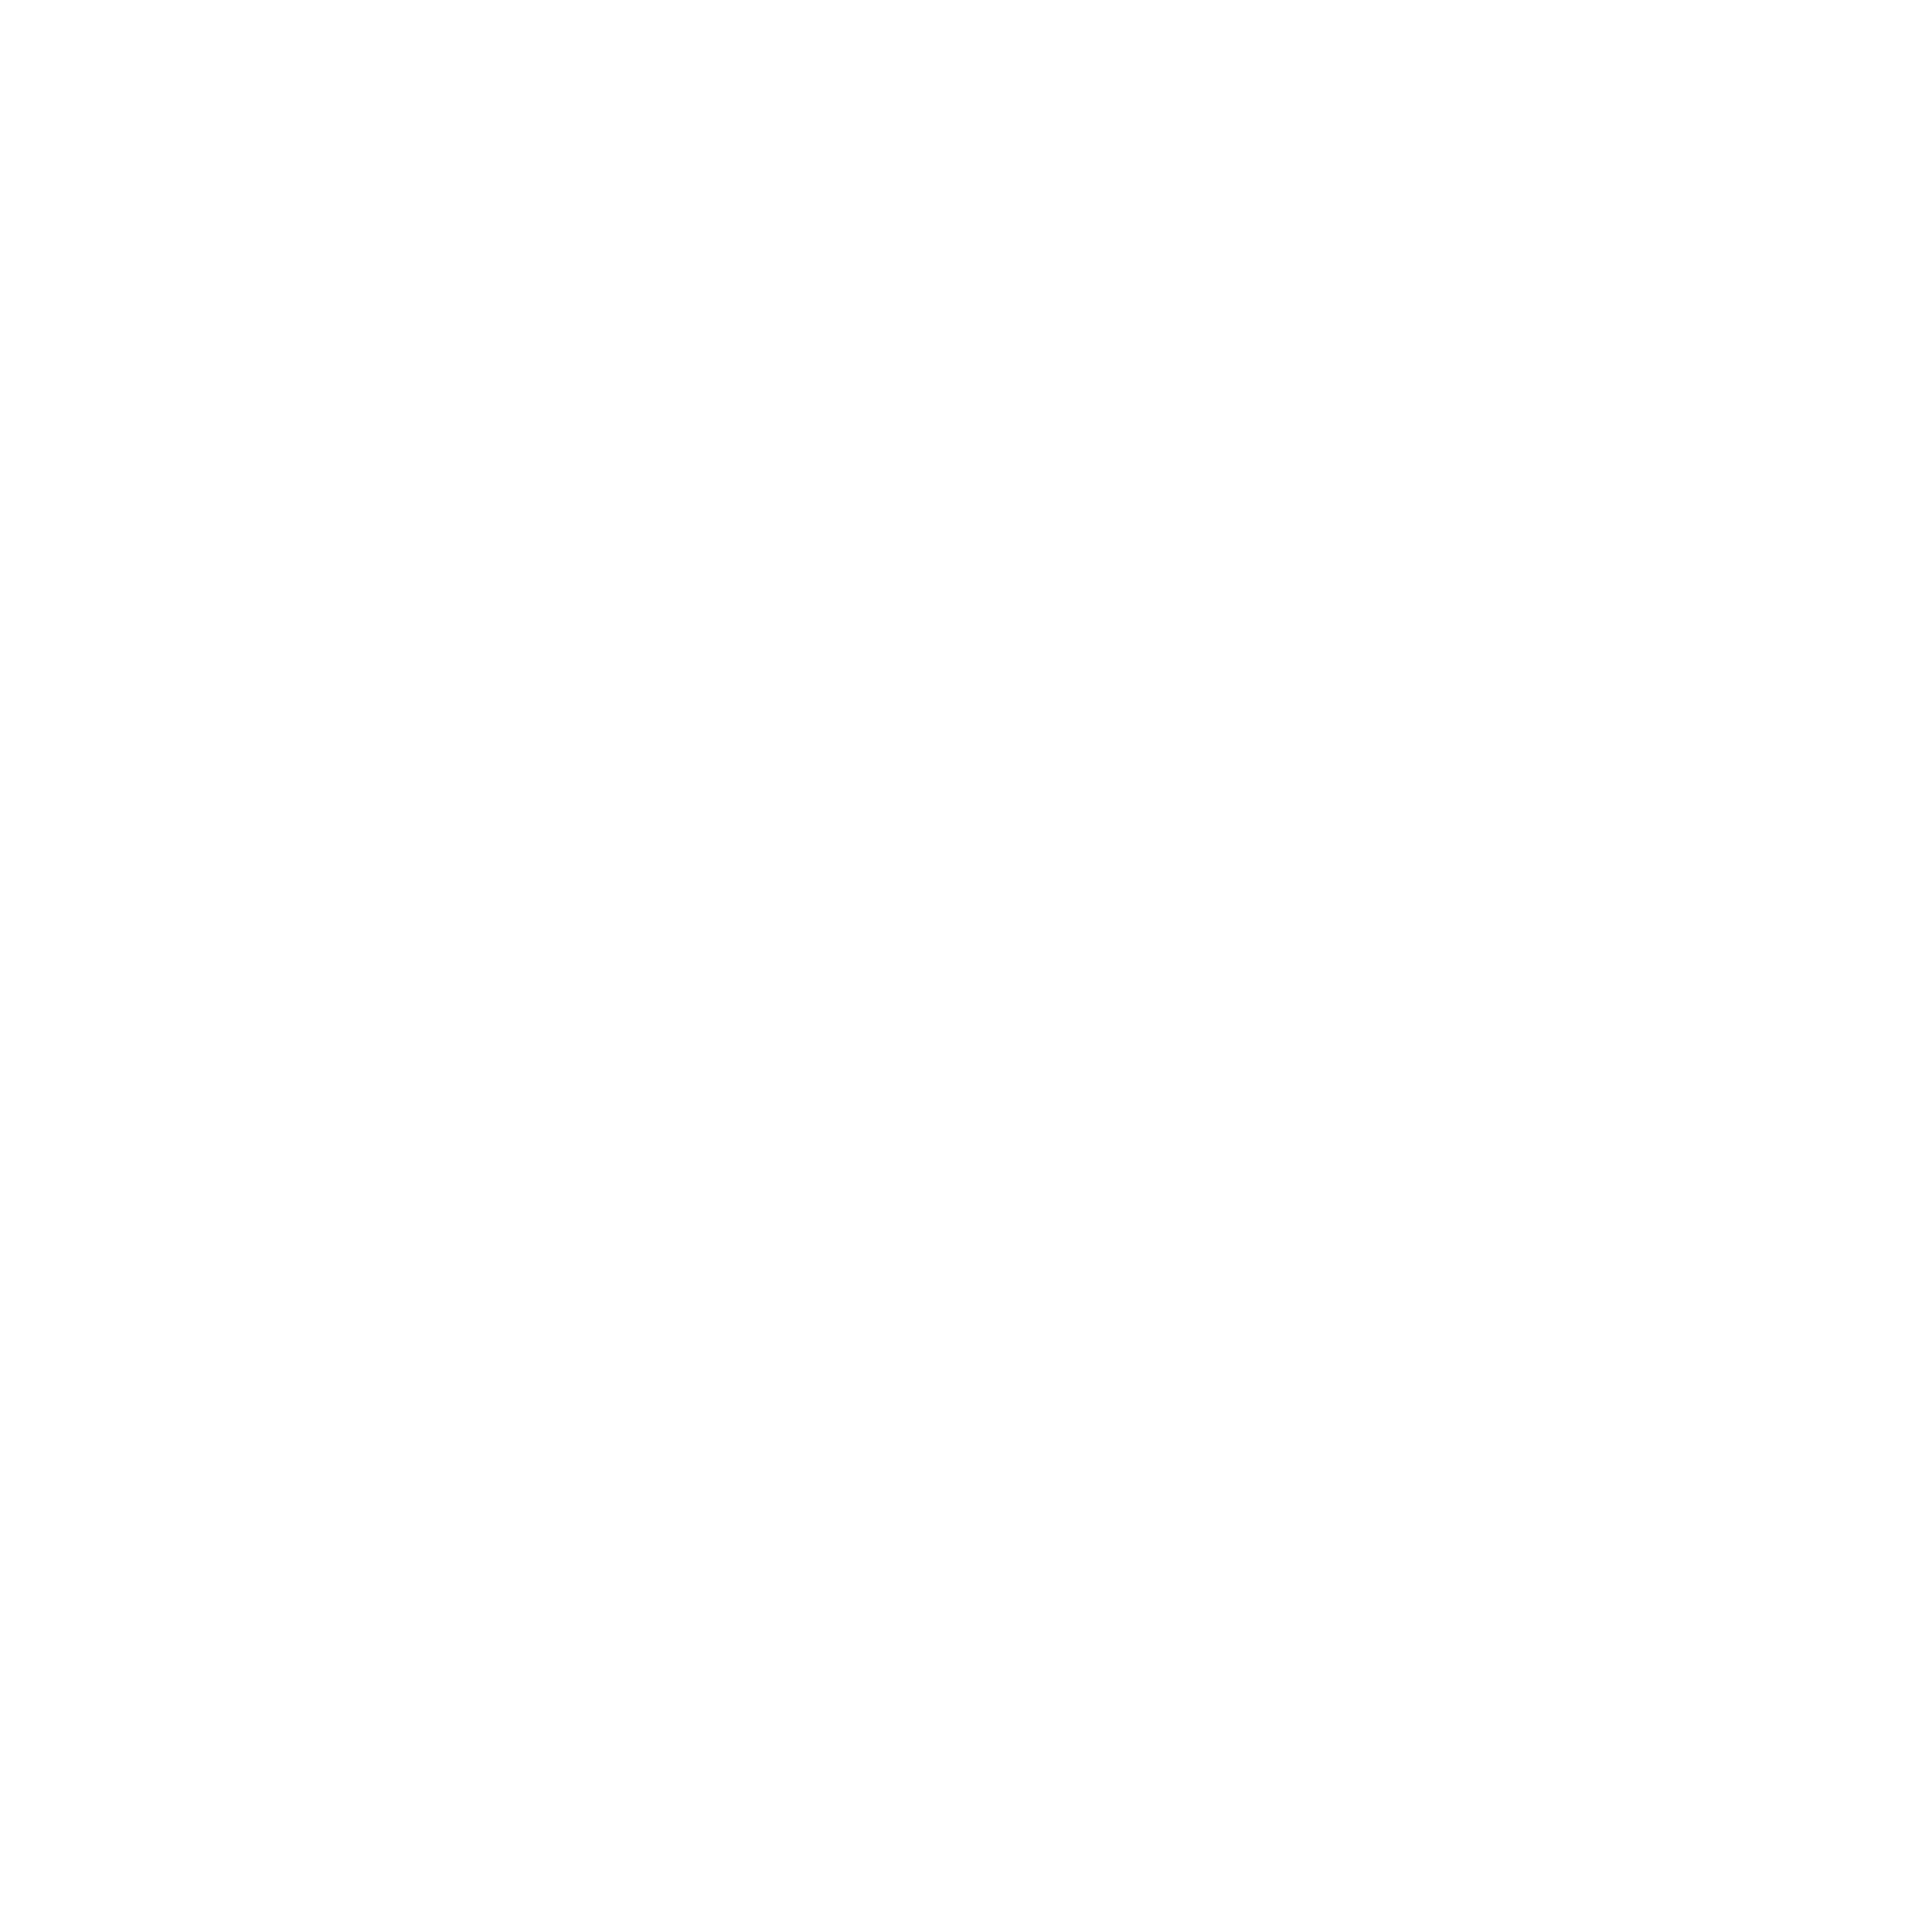 idc-1-logo-black-and-white.png